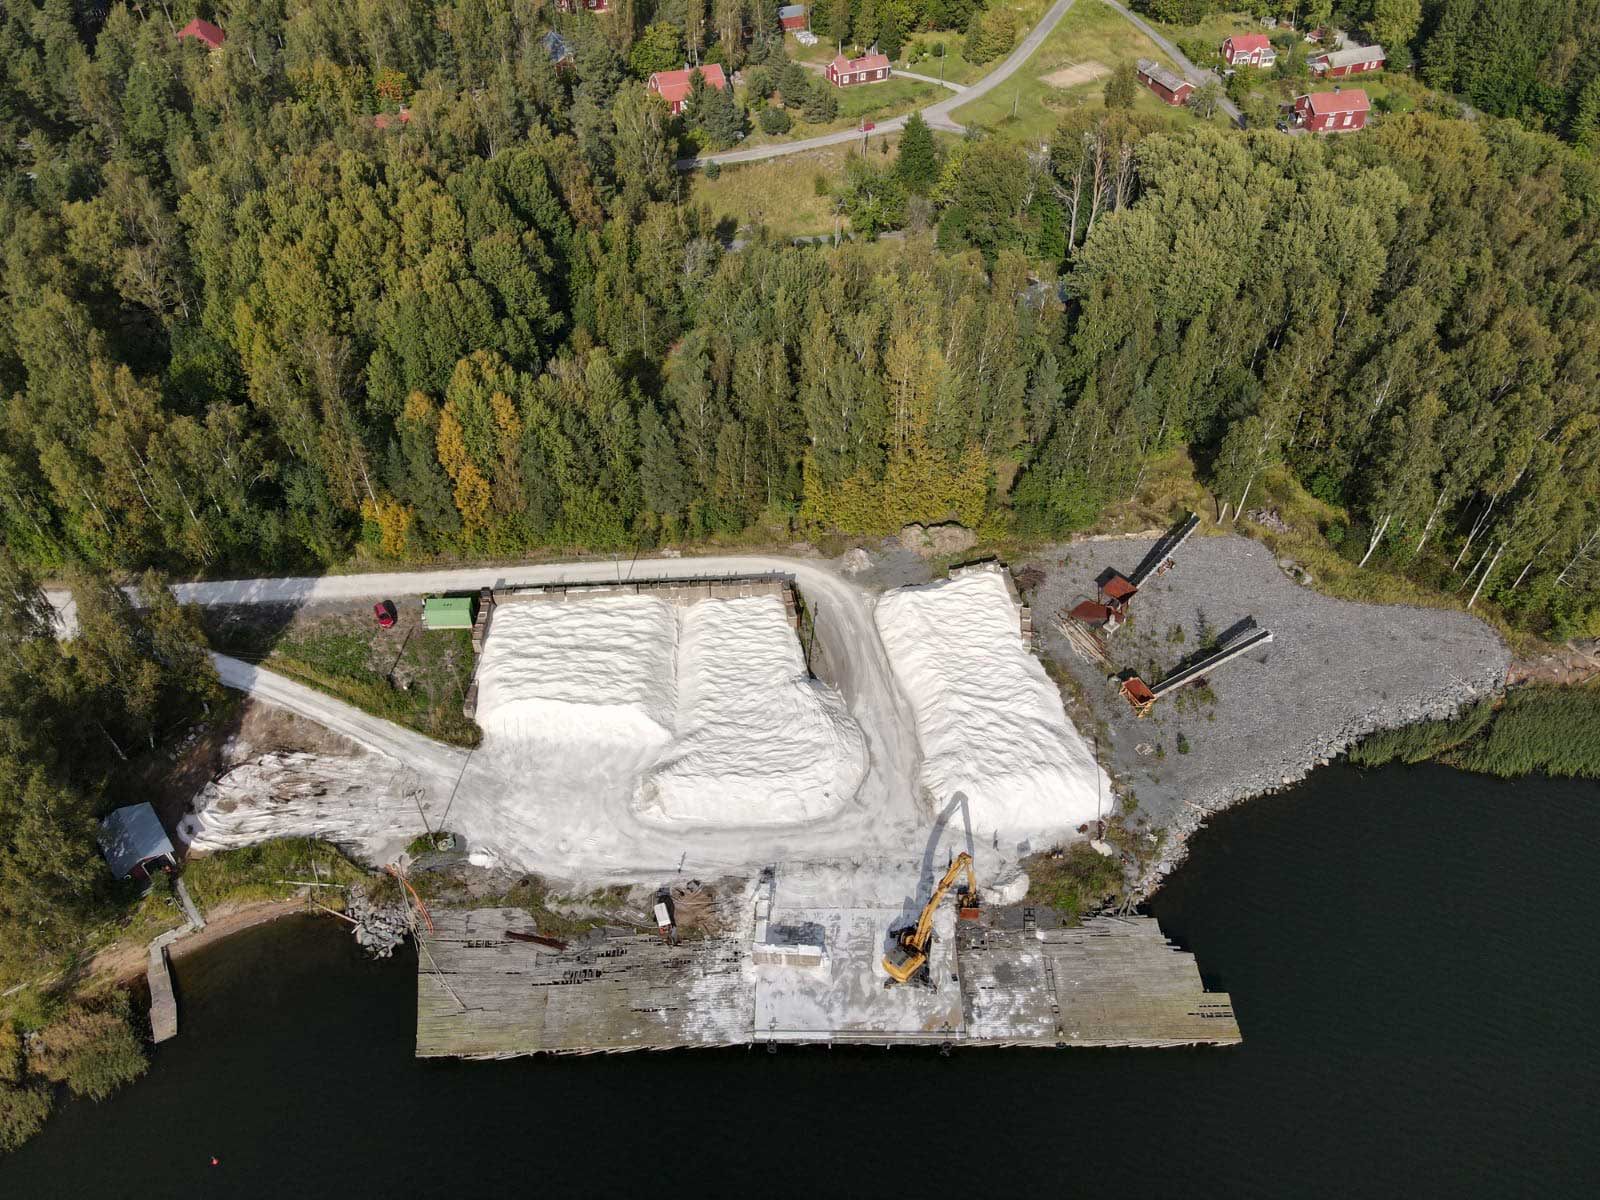 Meriaura Group acquired the port ofSkogby in Raseborg